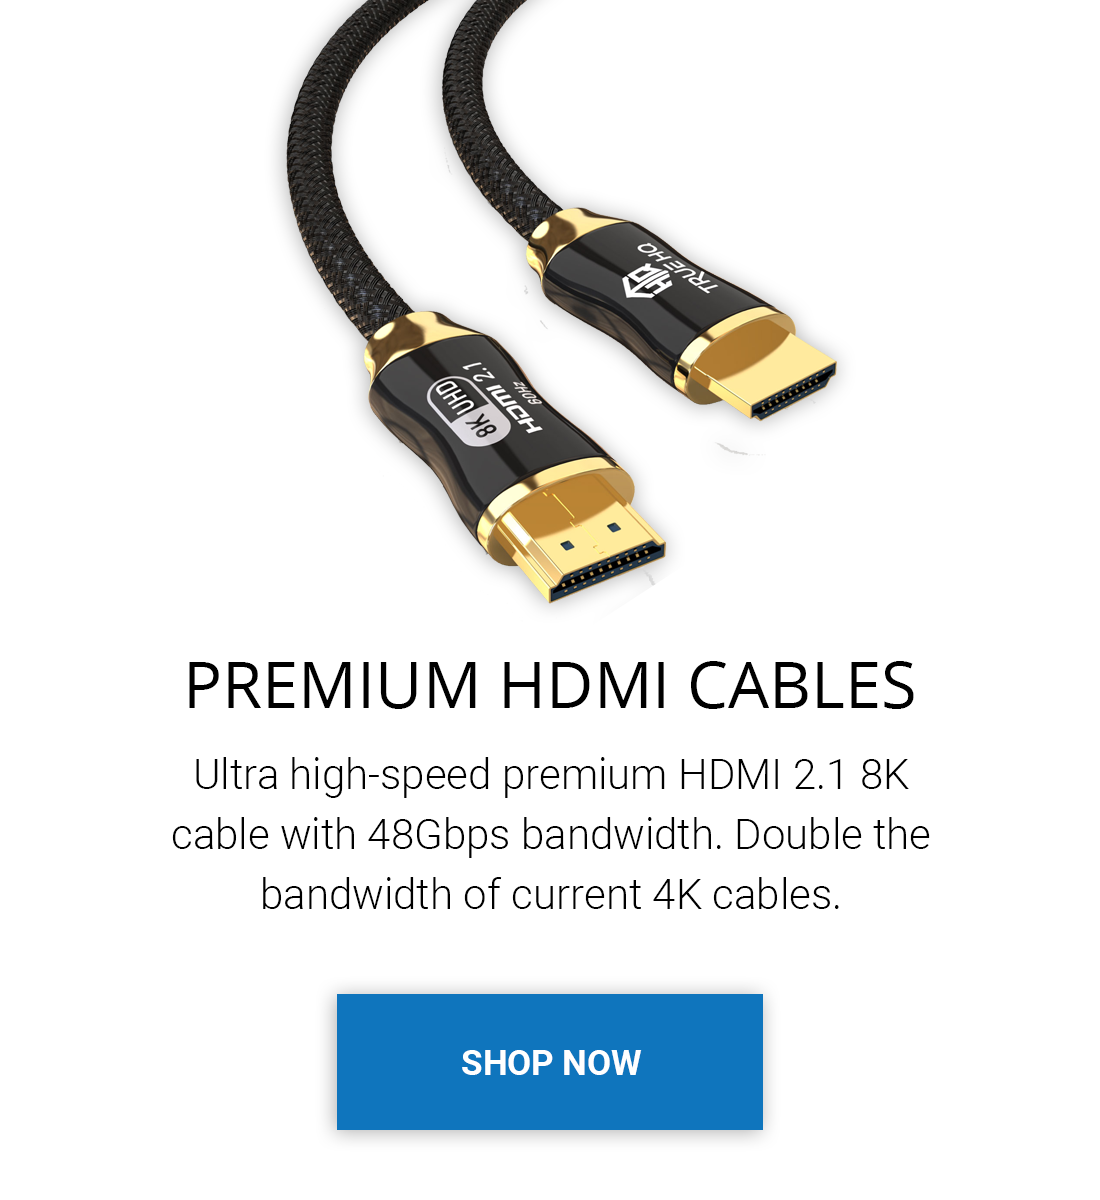 Buy premium hdmi cables 4k hdr. Ultra High Speed HDMI 2.1 Cable 48Gbps. Best quality. Dynamic HDR, 8K, 4K, Certified, OLED TV, Sky, Virgin, braided jacket. Free UK Shipping